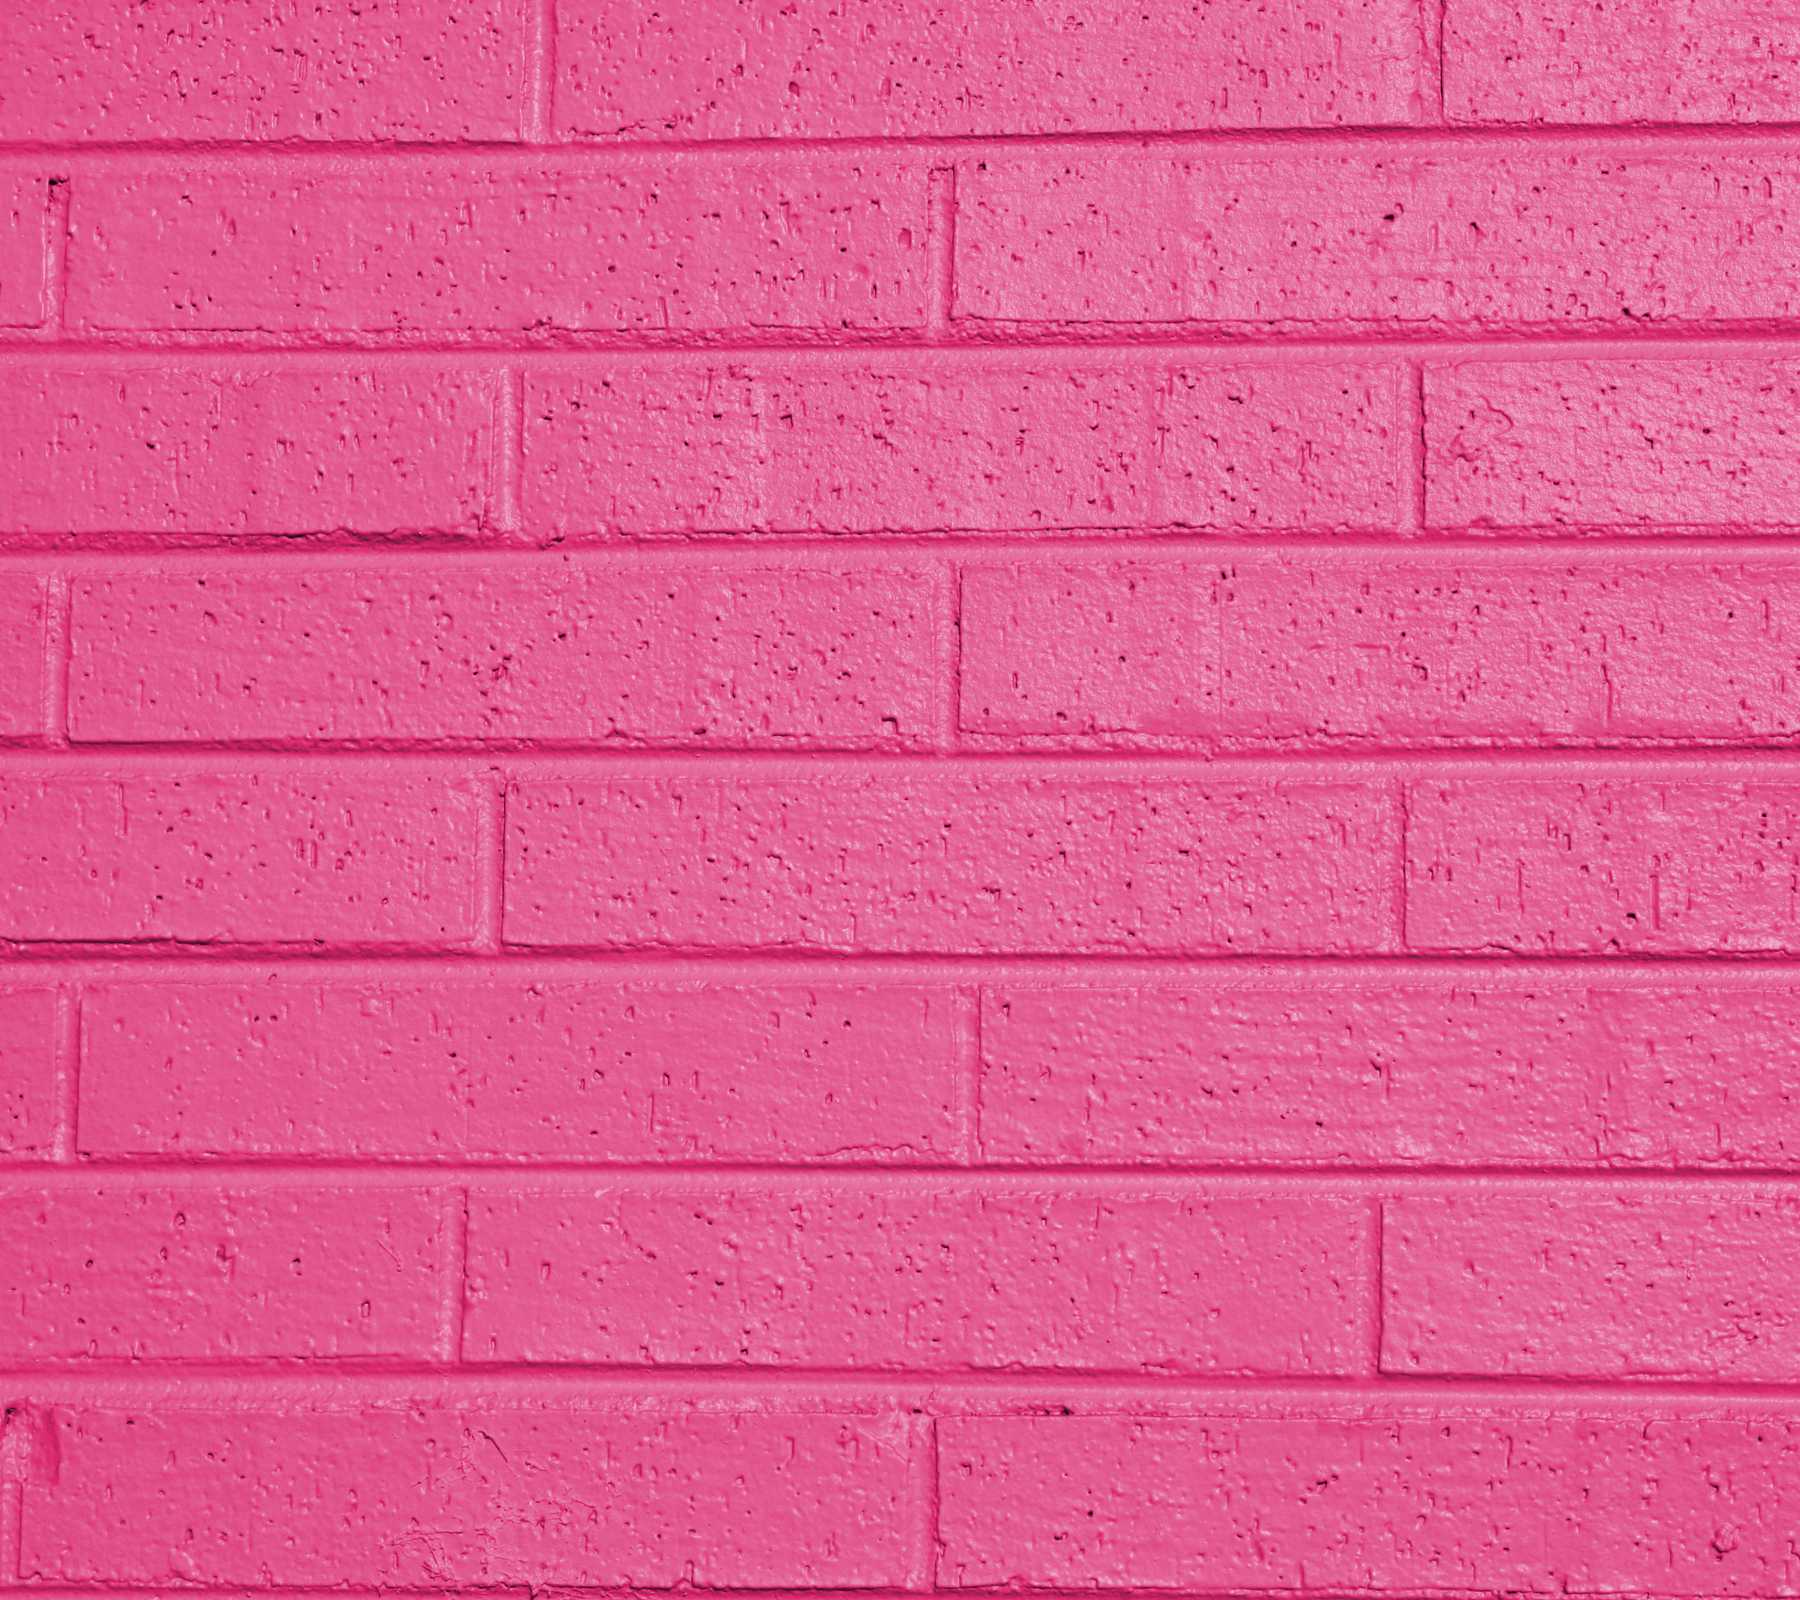 Hot Pink Painted Brick Wall Background Image Wallpaper Or